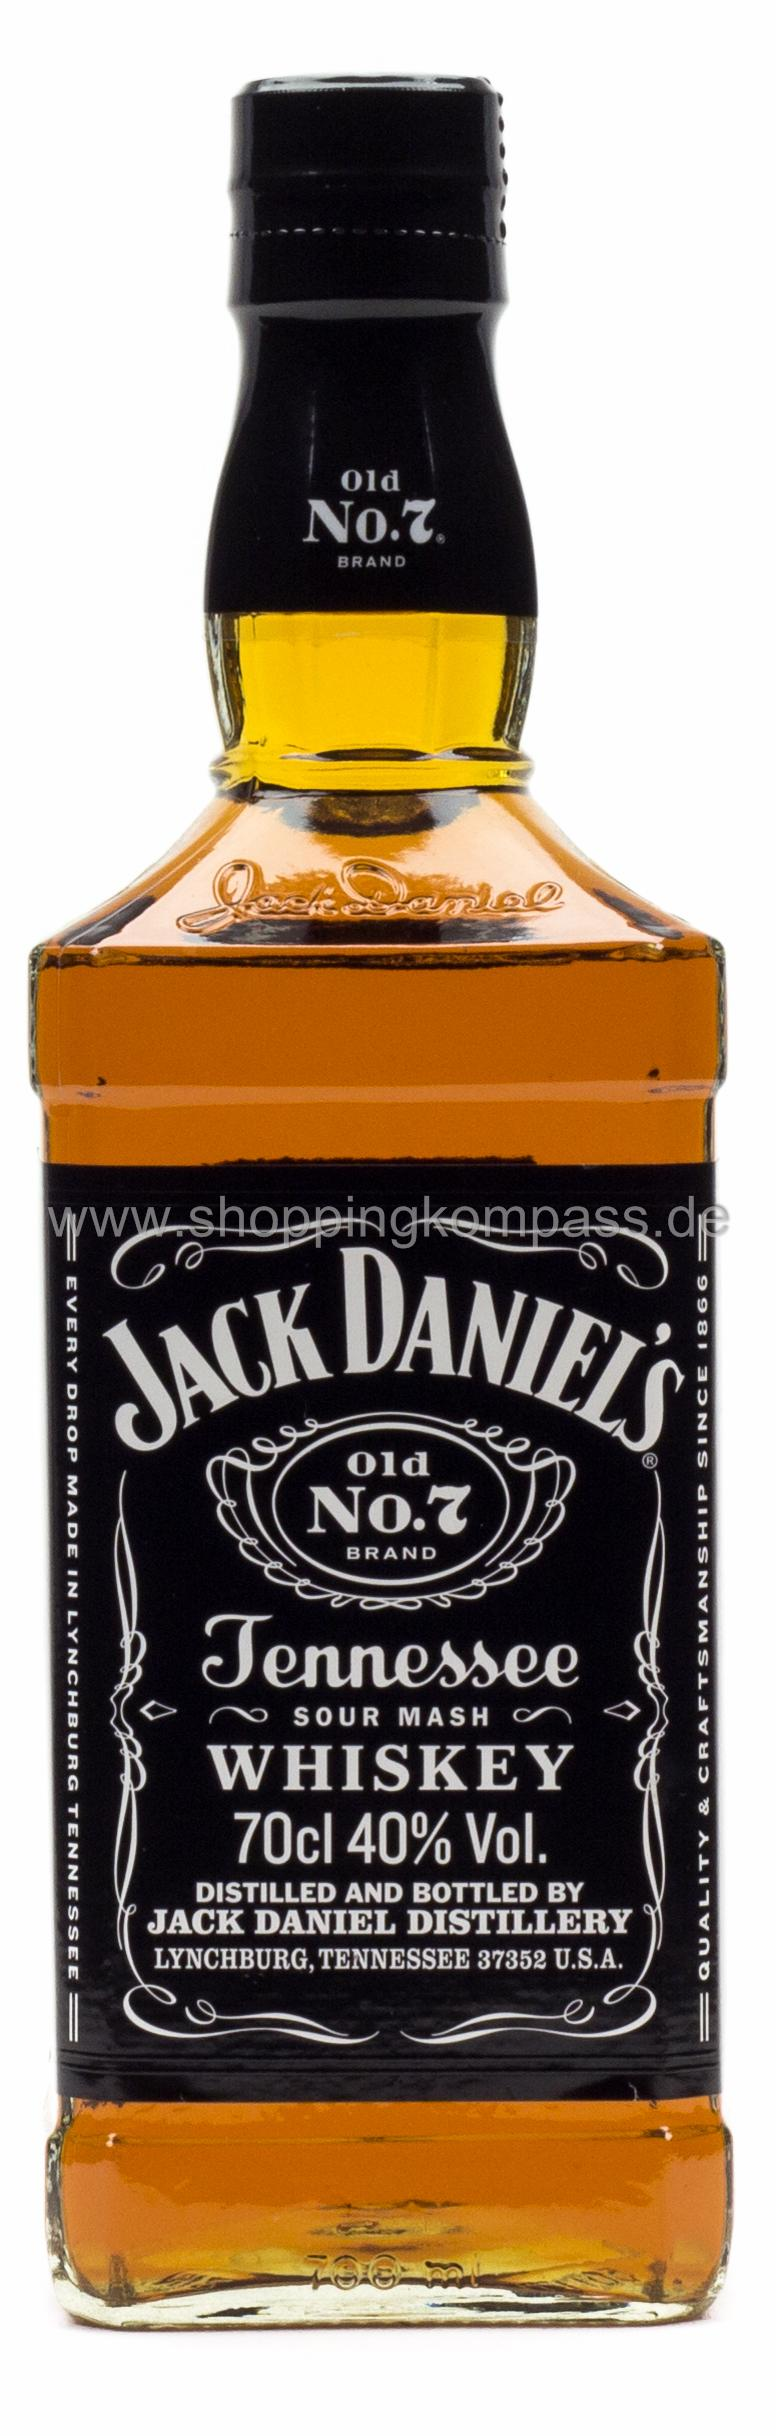 Jack Daniel's Tennessee Whiskey Old No.7 0,7 l